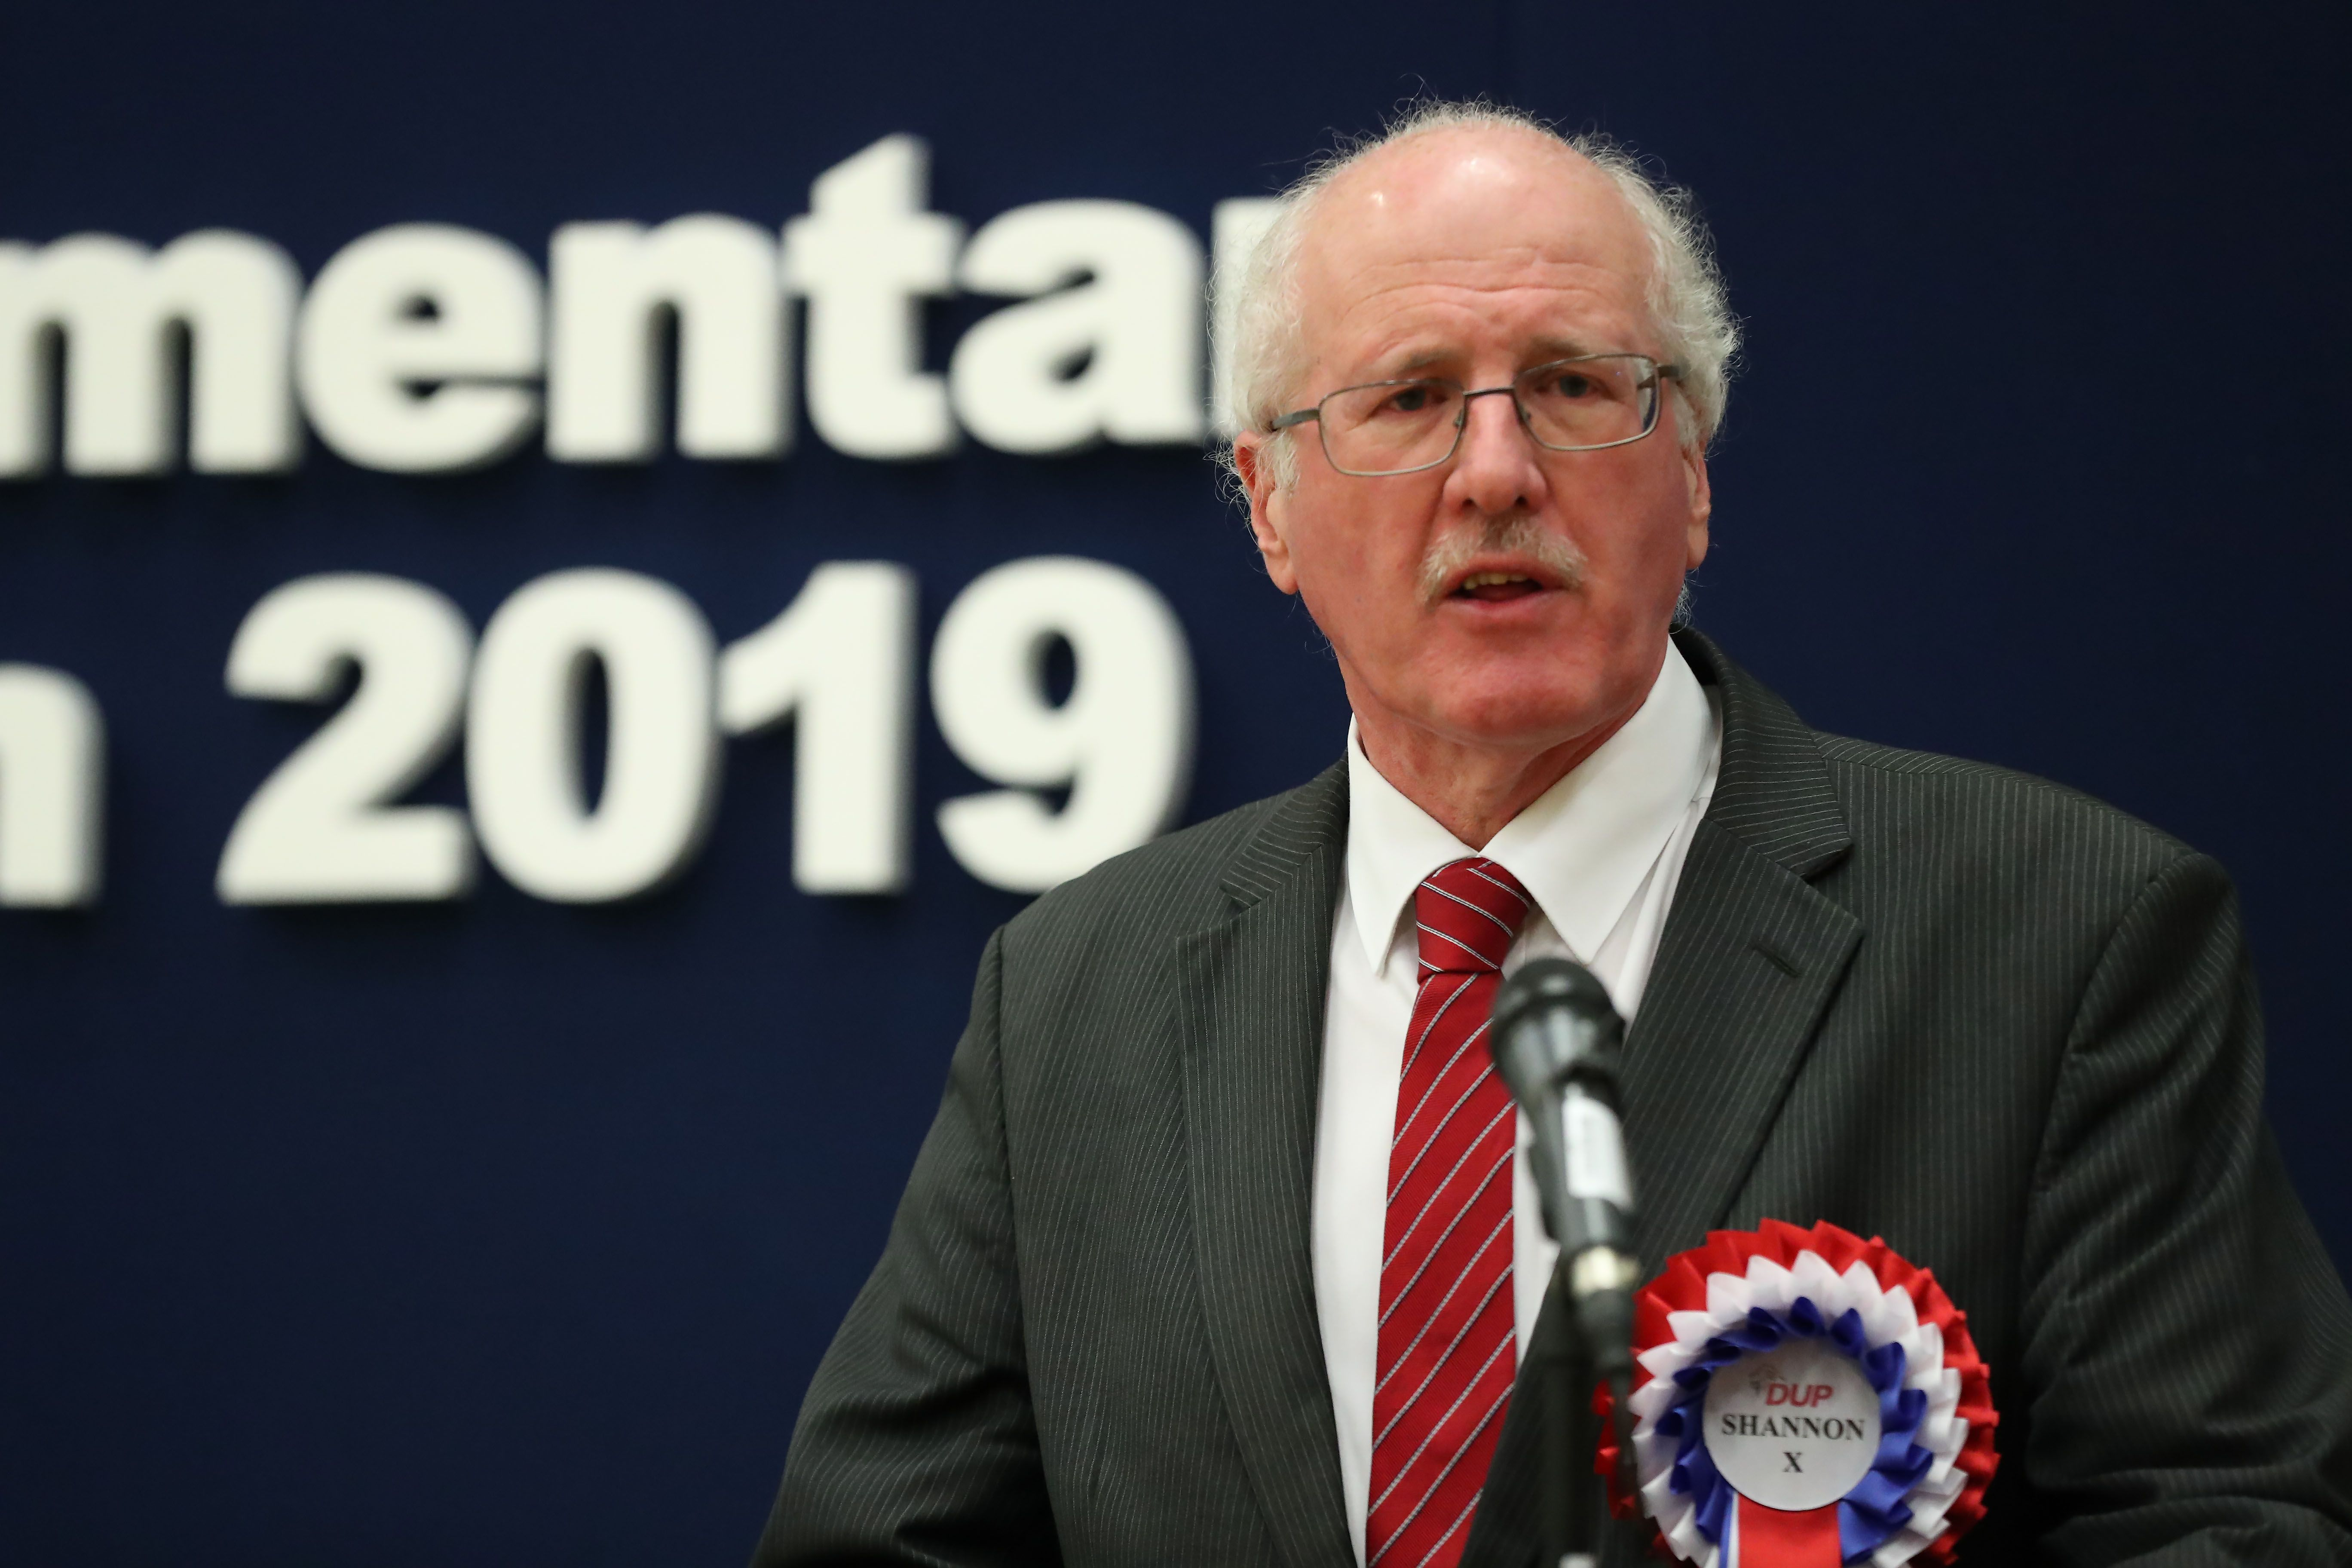 KEEP LOCAL PAPERS OPEN: DUP MP Jim Shannon